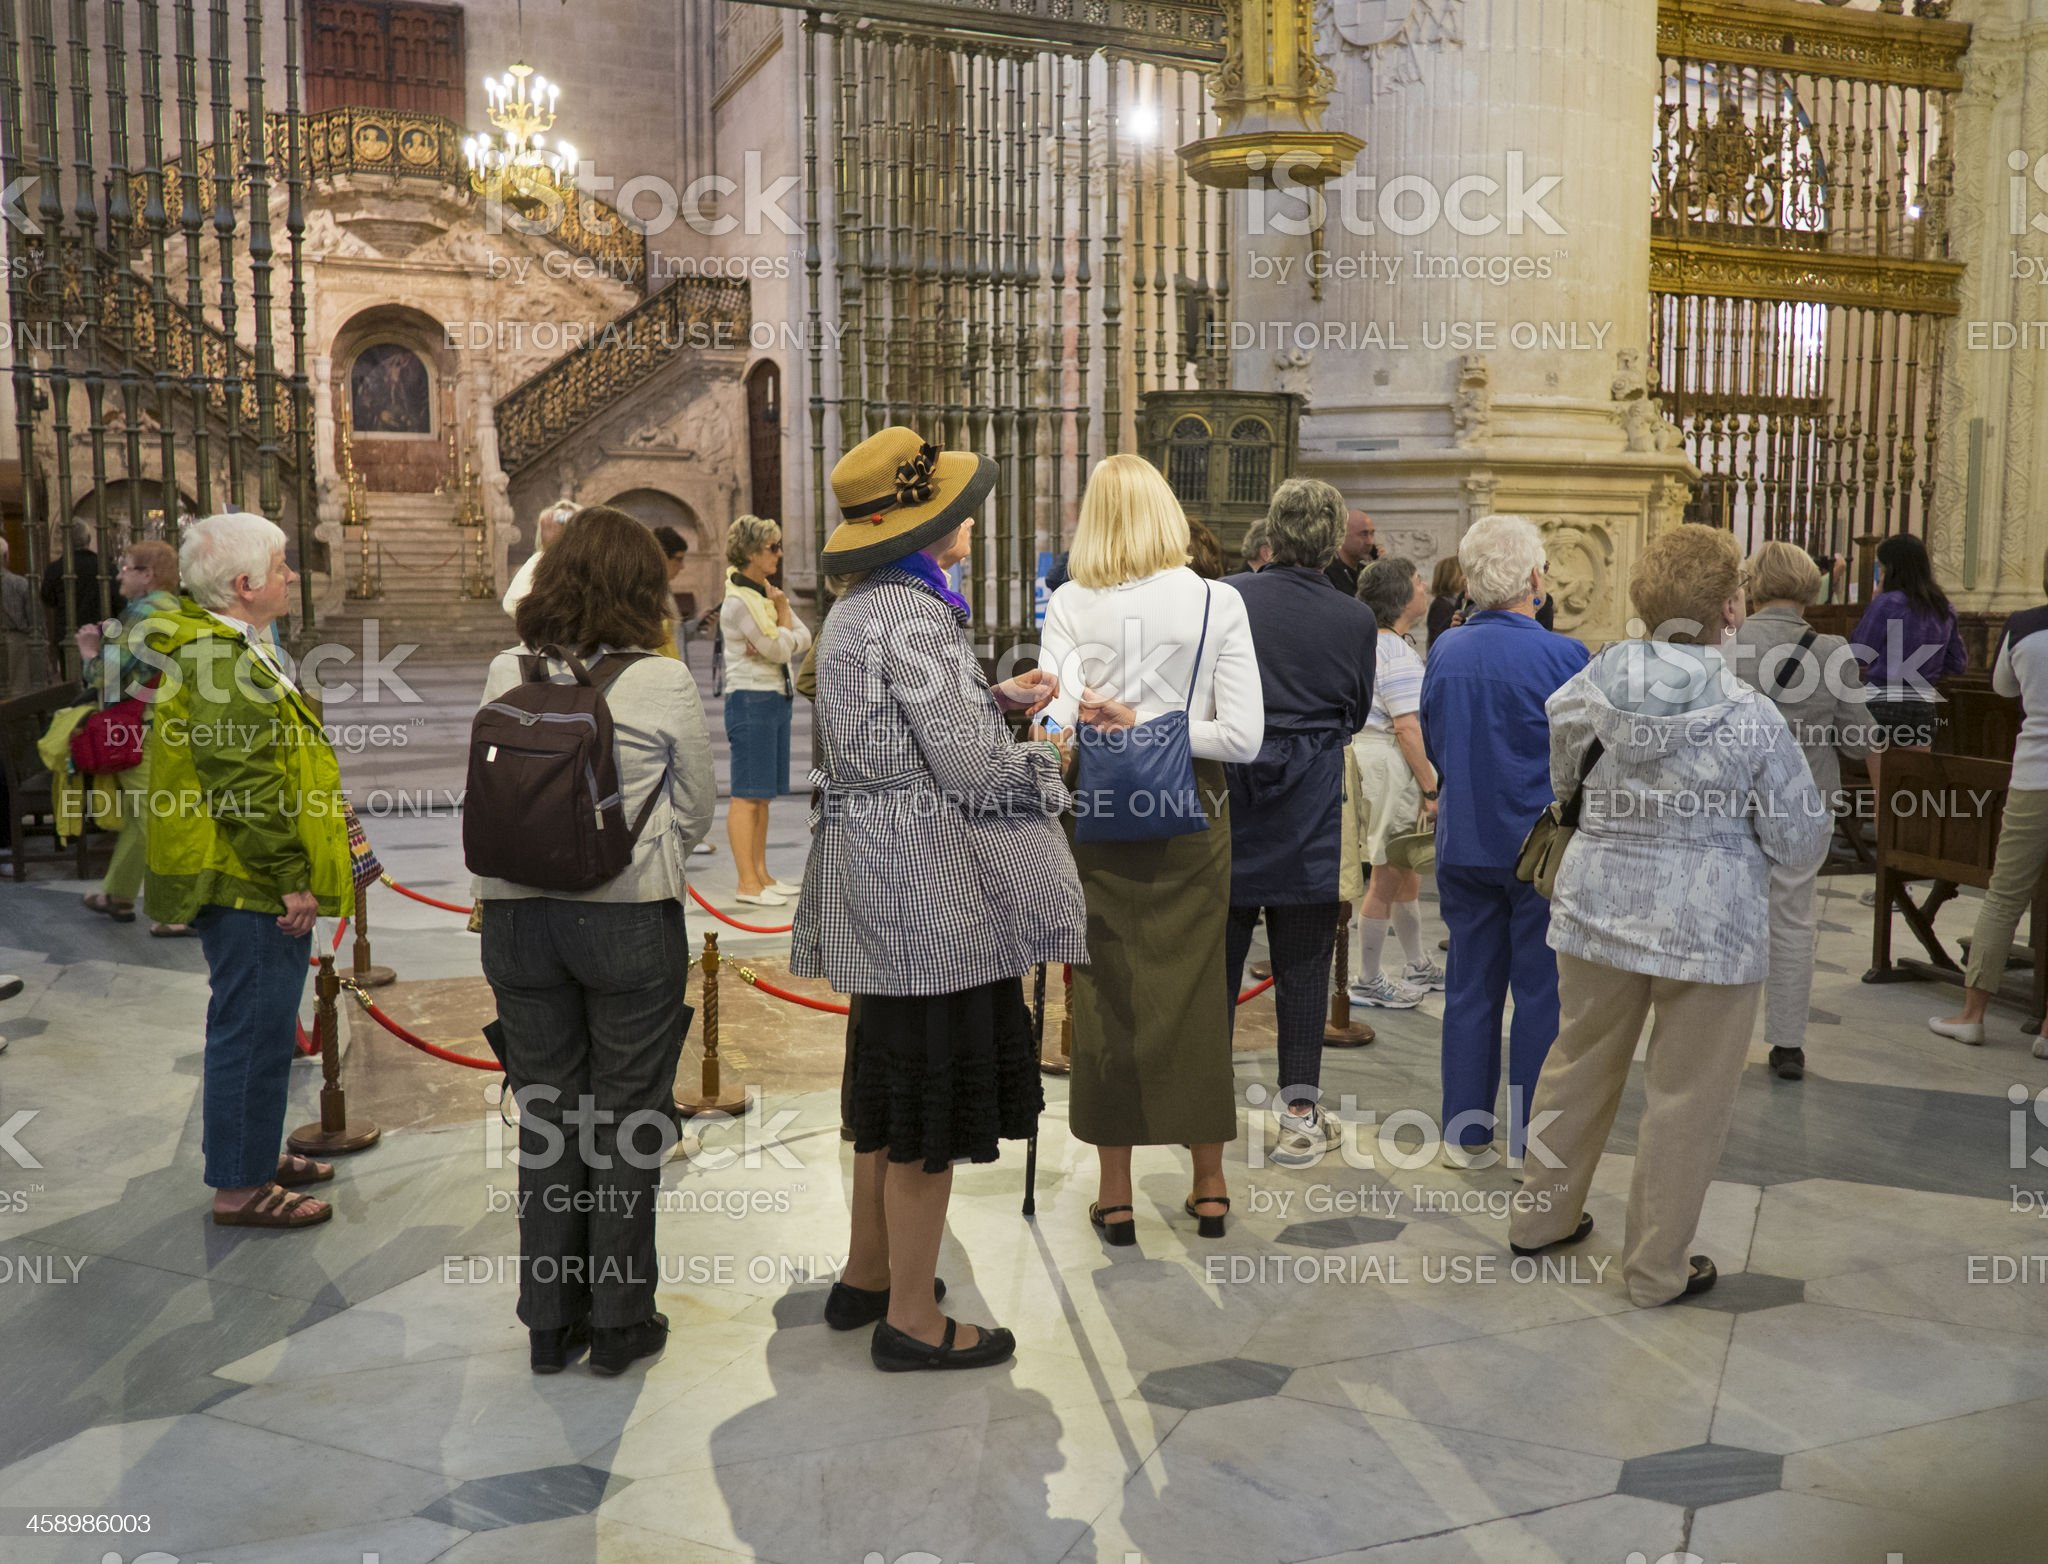 Tourists inside a cathedral royalty-free stock photo